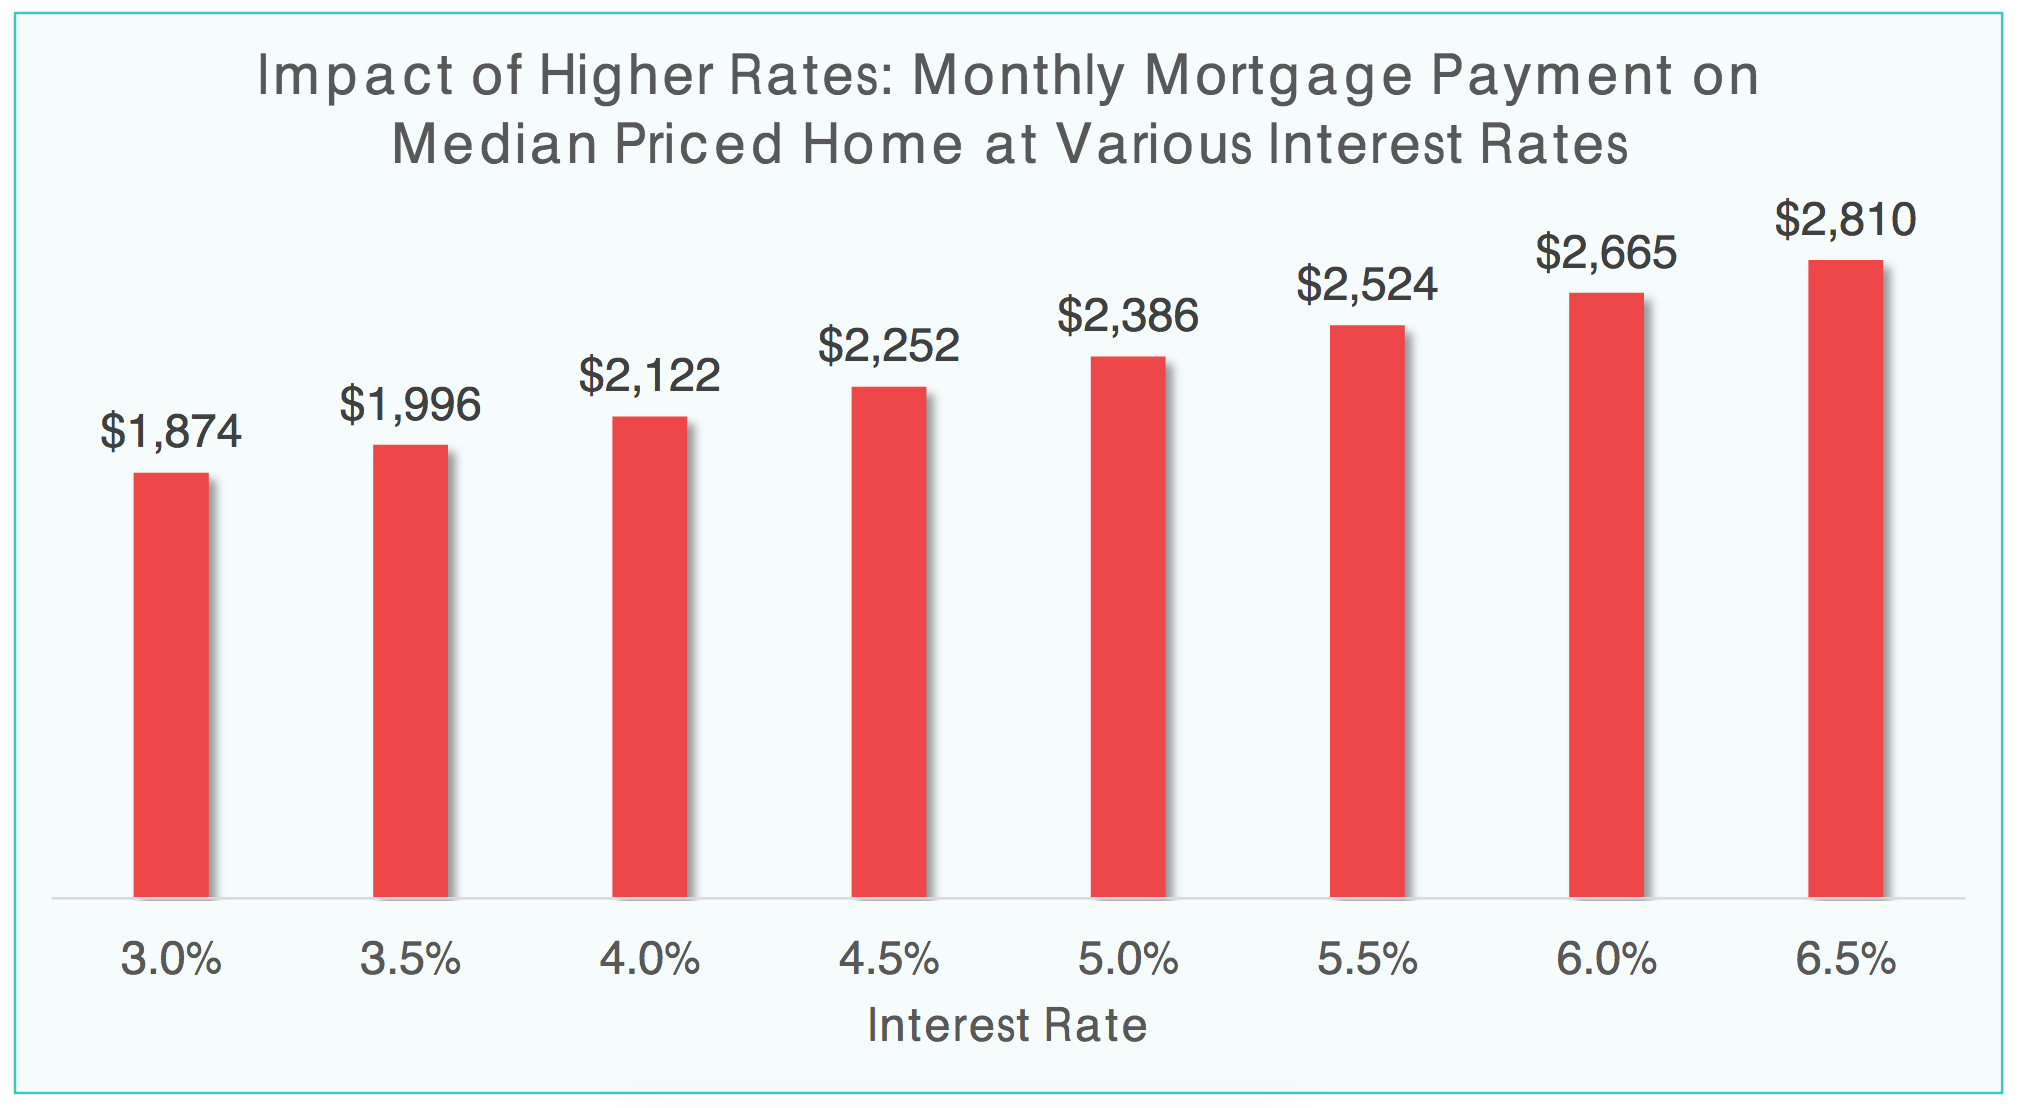 Impact of Higher Rages Monthly Mortgage Payment on Median Priced Home at Various Interest Rates